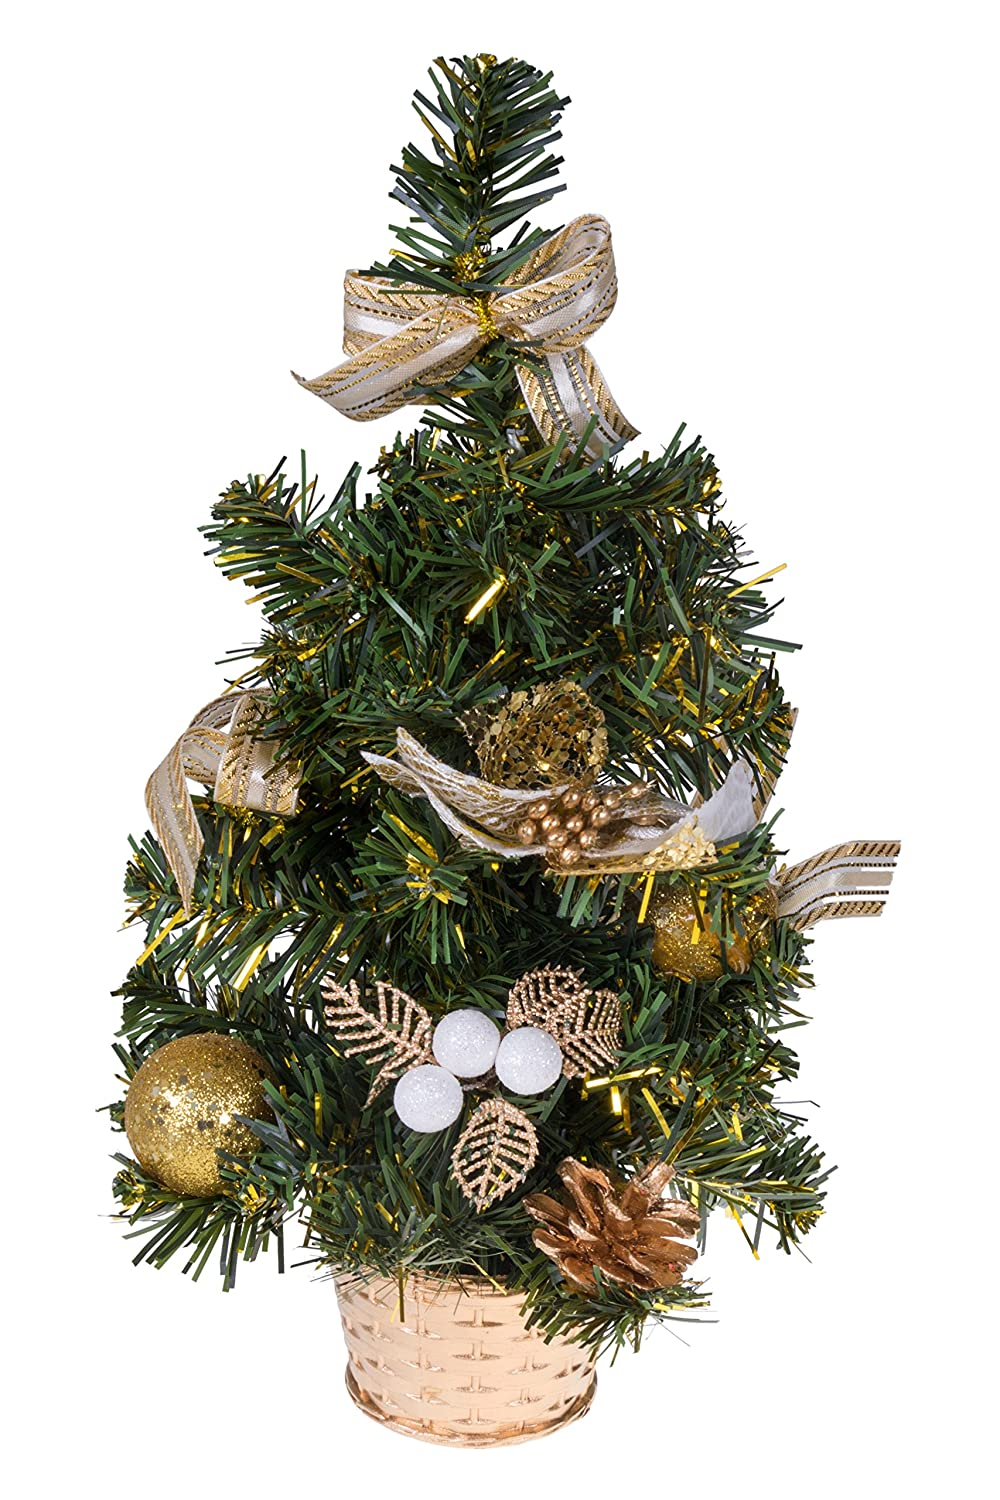 How To Put Ribbon On Christmas Tree.Clever Creations Mini Artificial Christmas Tree With Pinecone Ribbon And Ball Ornaments Gold Christmas Decor Theme Decoration For Home And Office